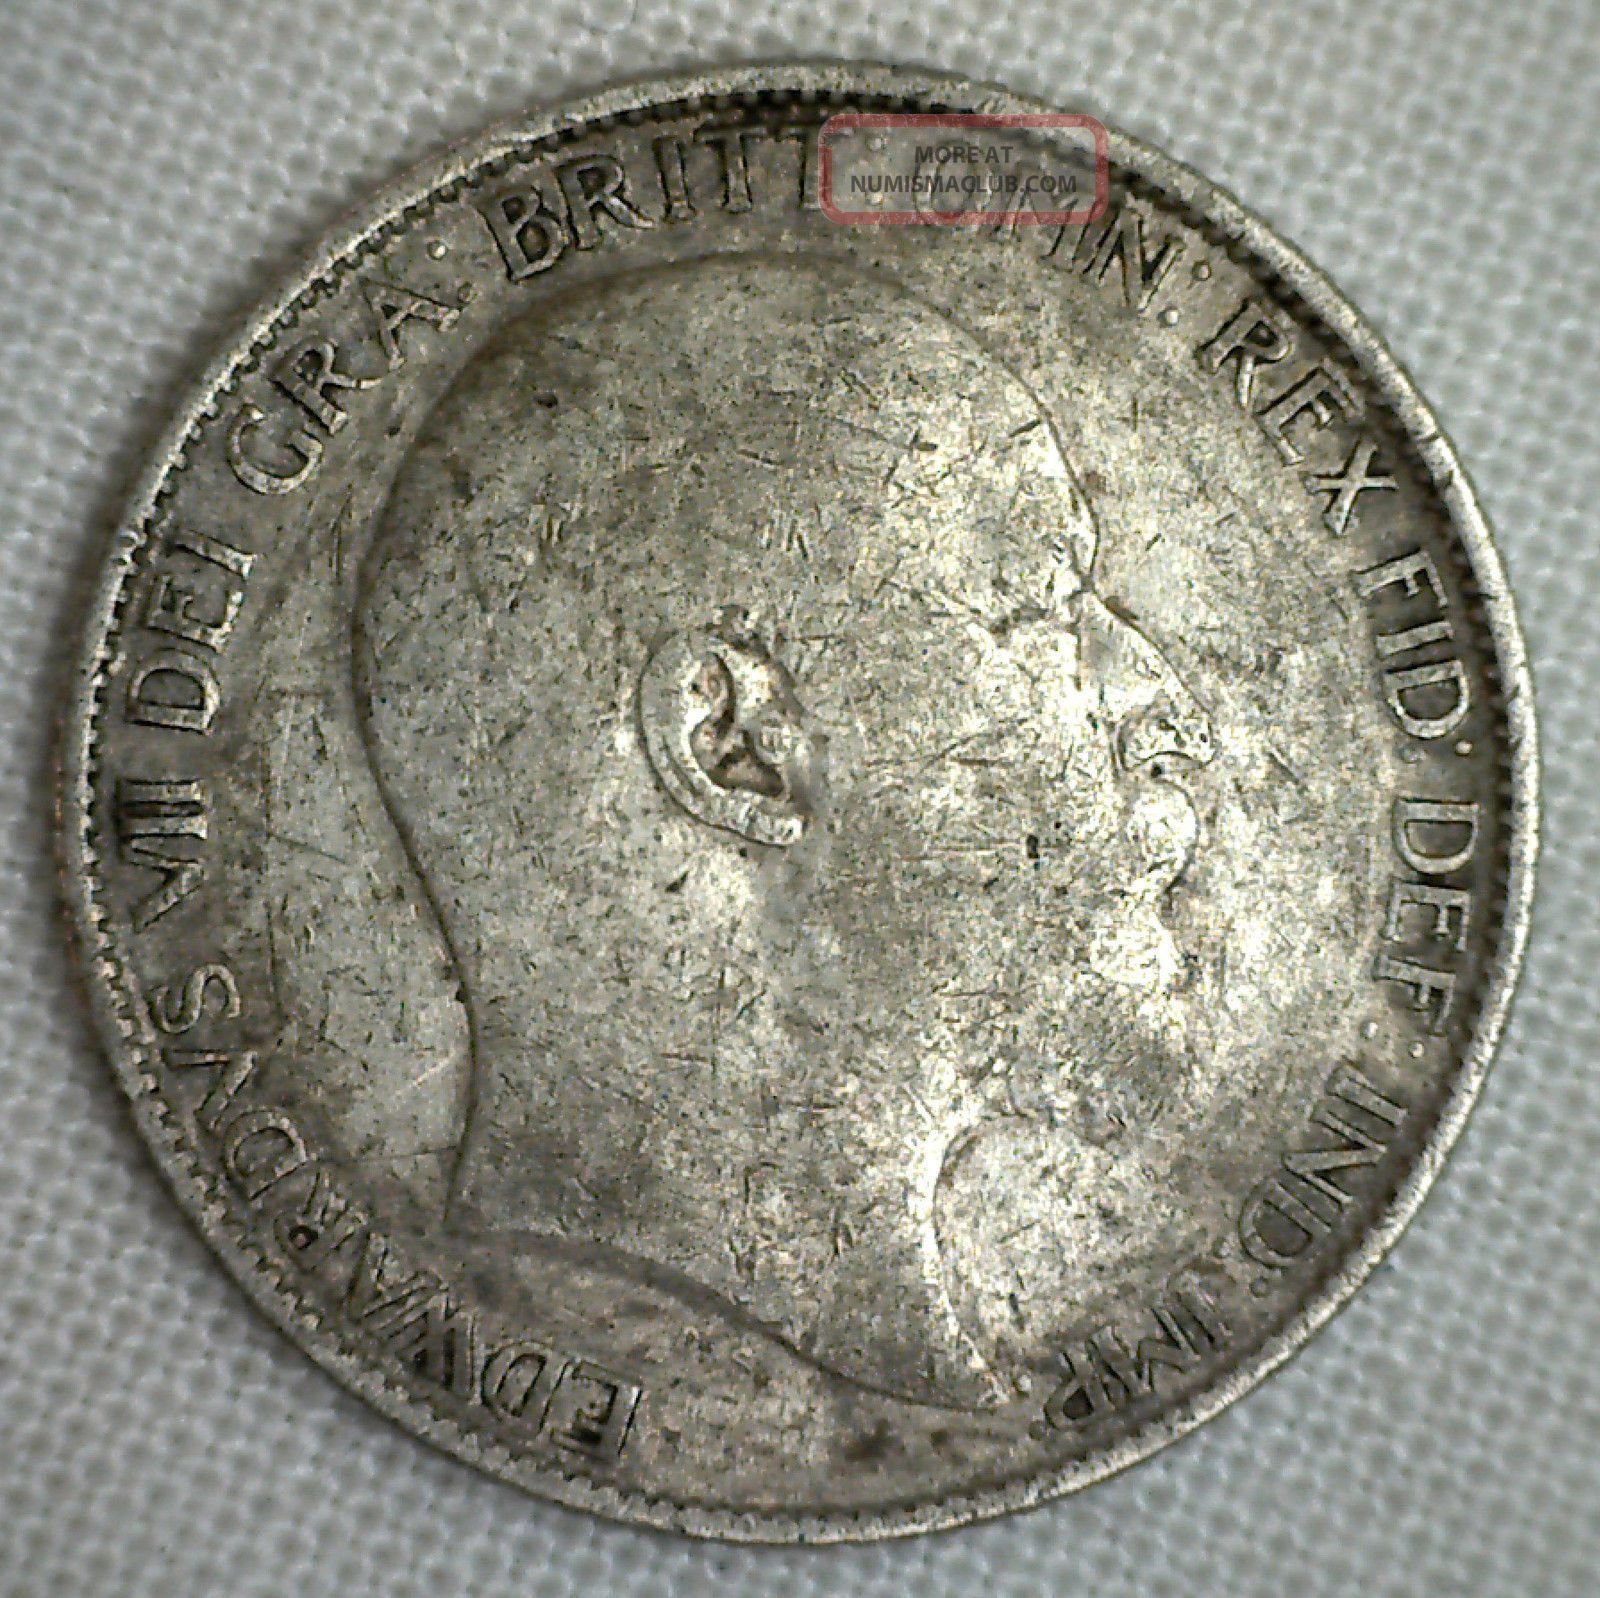 1908 Great Britain 6 Pence Km 799 Yg World Coin Silver English P UK (Great Britain) photo